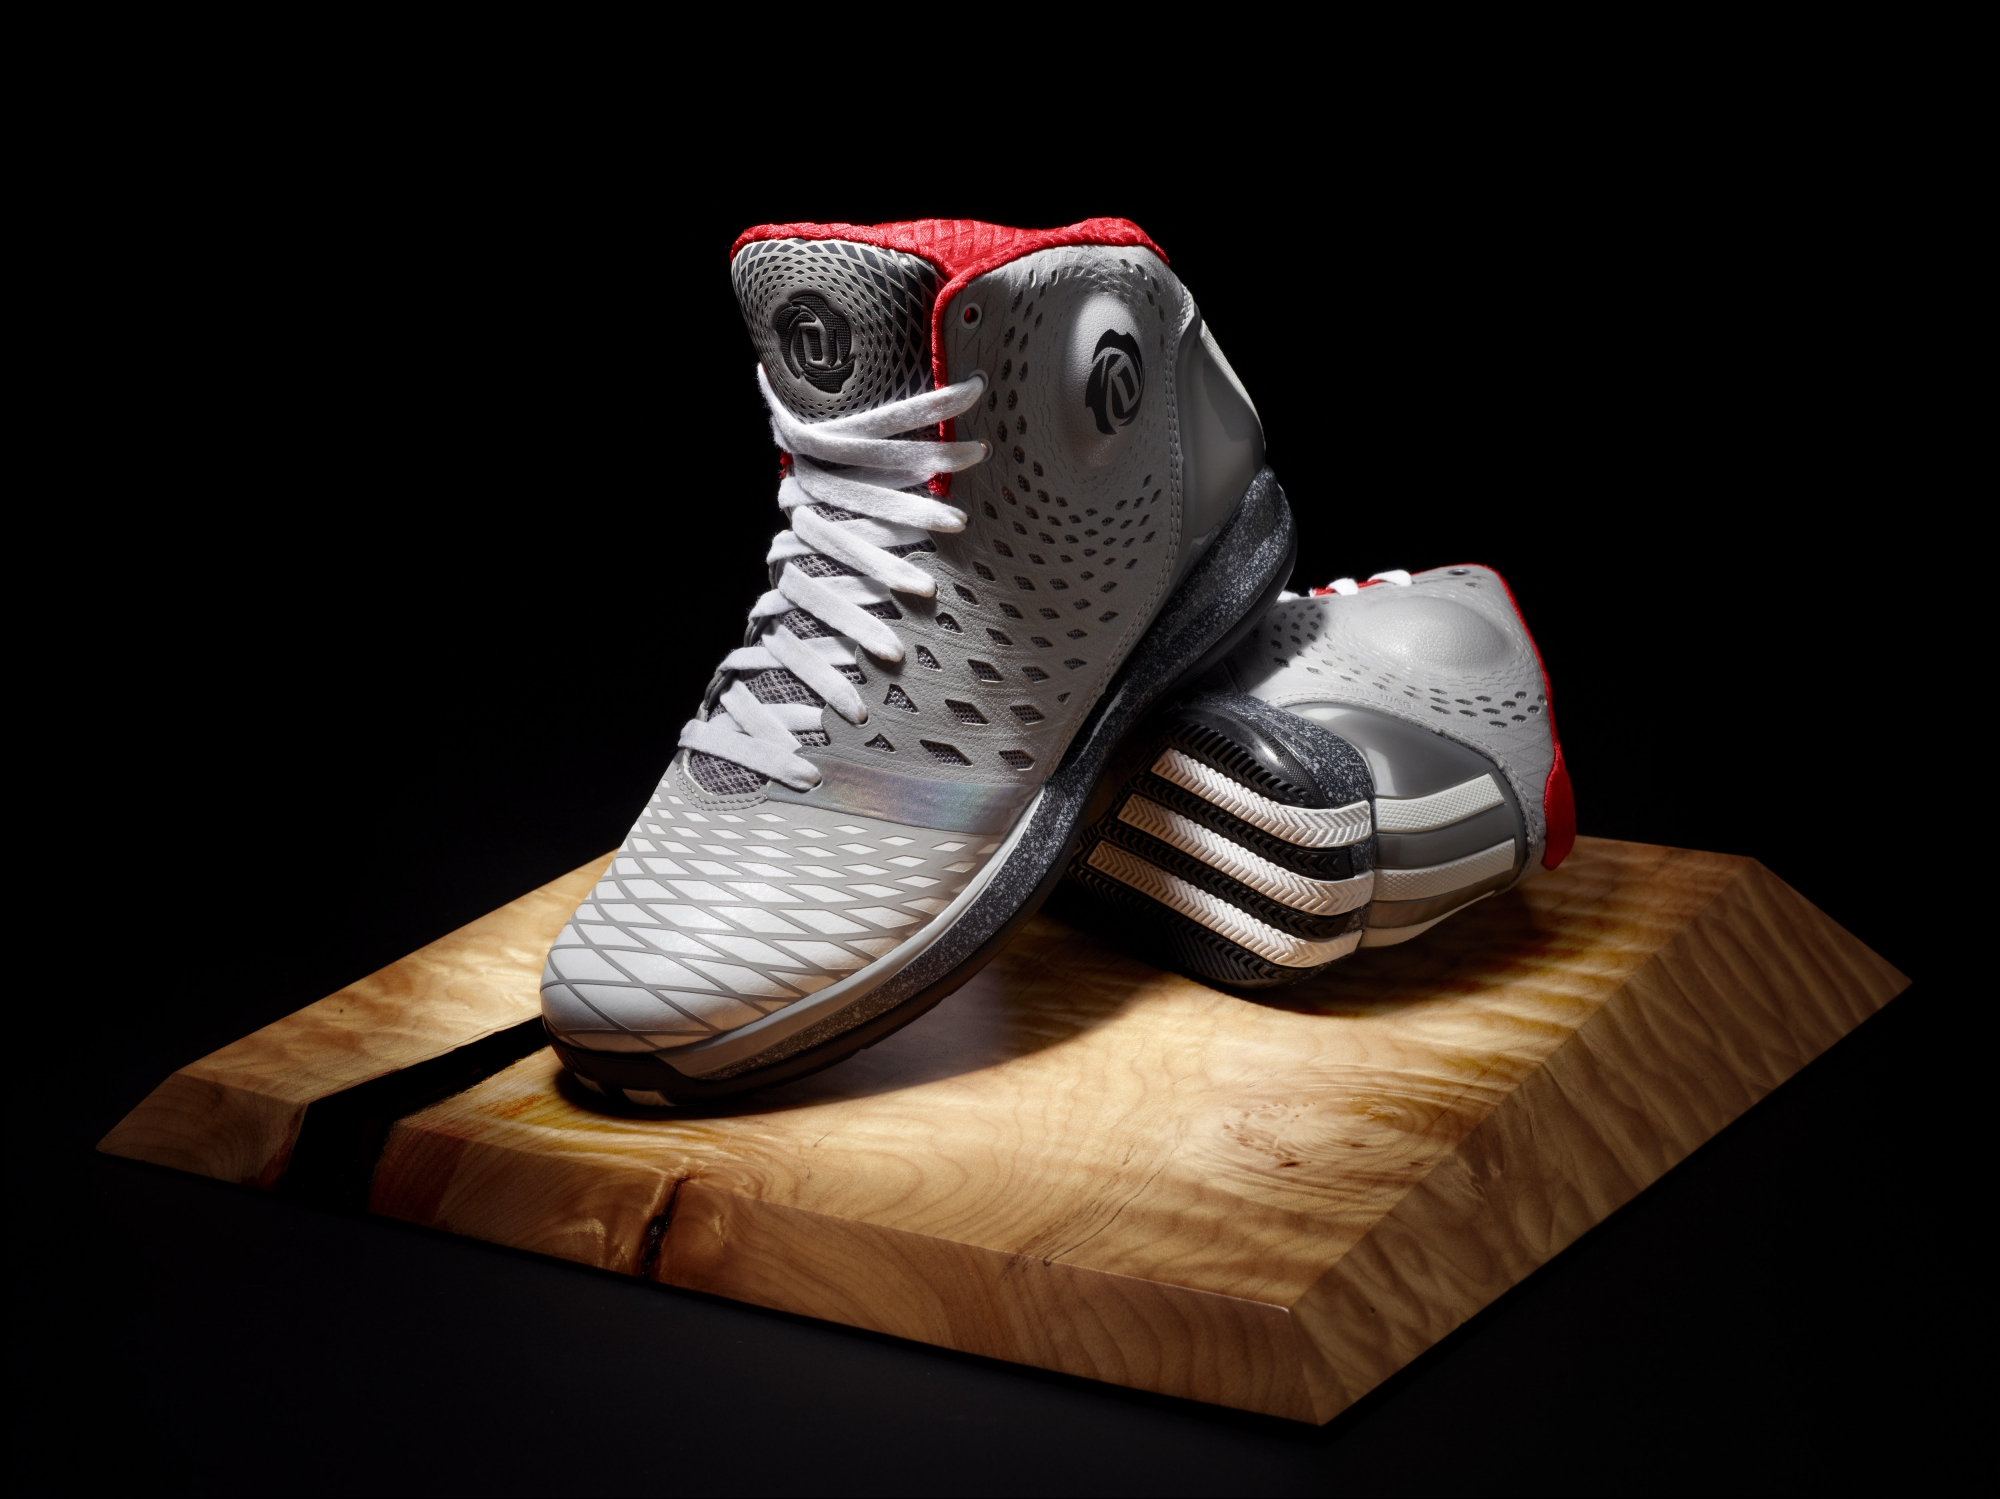 Lethal Weapon 2's Derrick OConnor dies age 77 Daily Pictures of the new derrick rose shoes